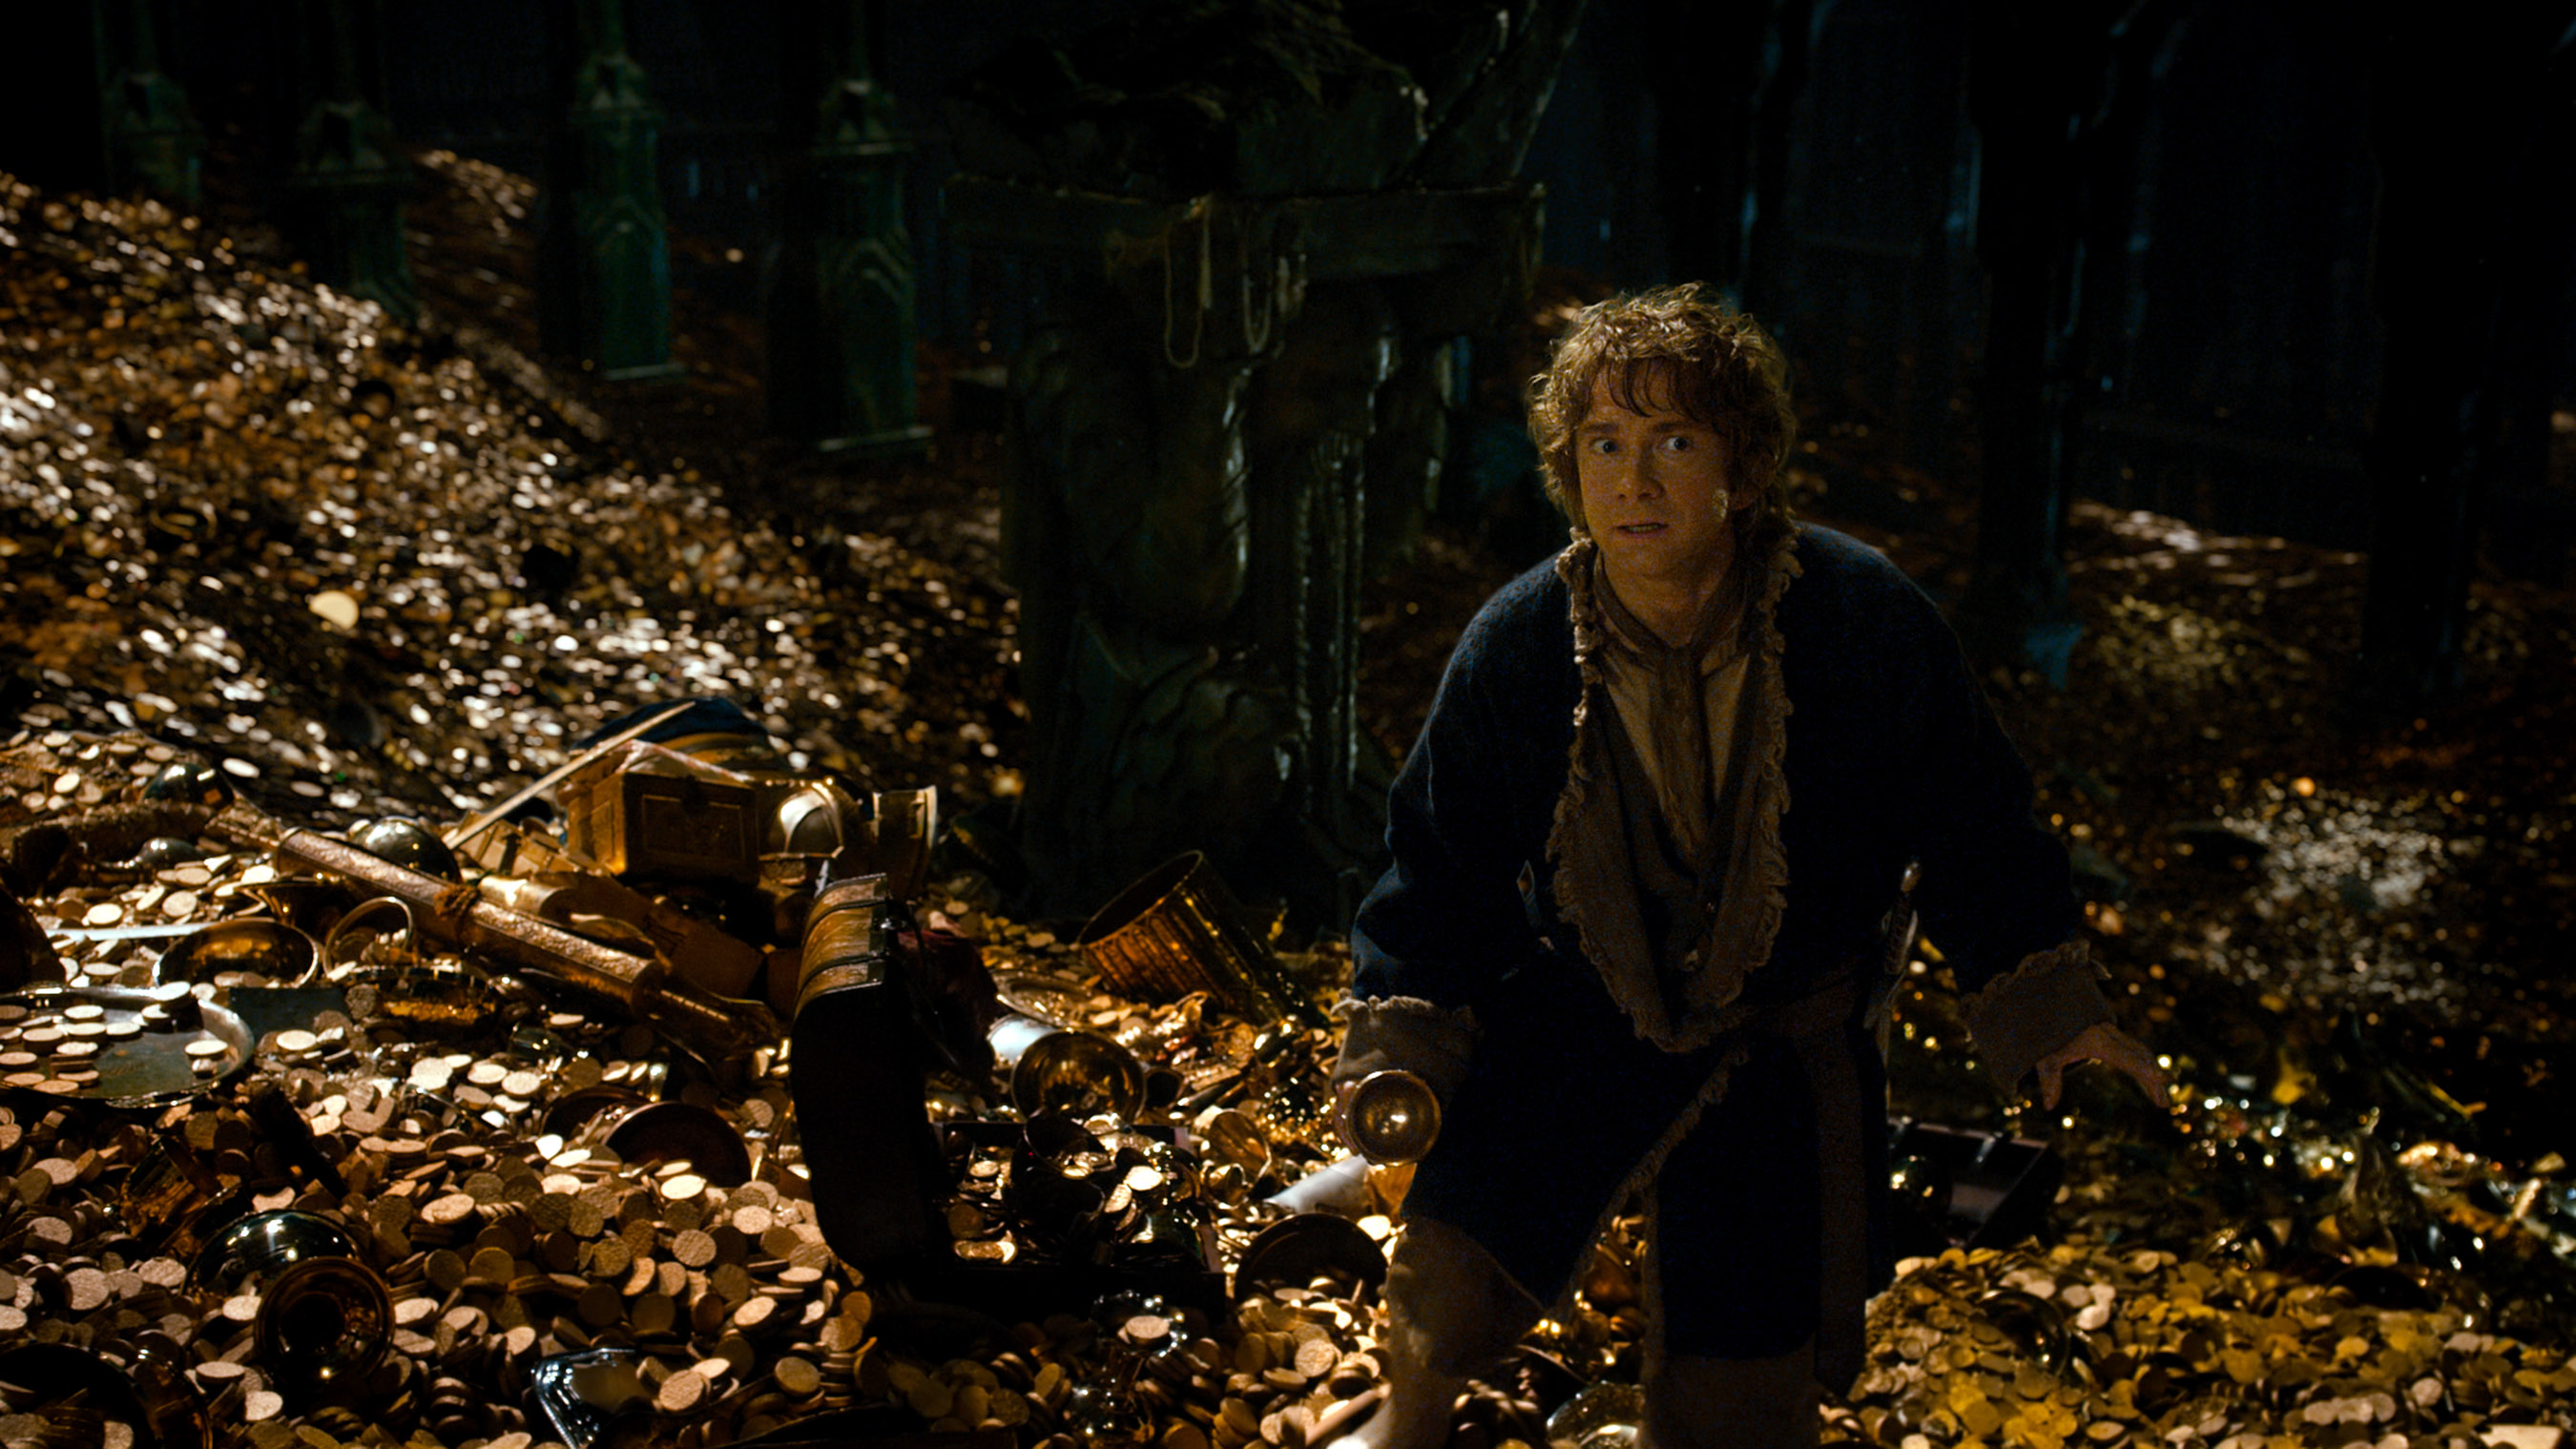 the-hobbit-desolation-of-smaug-bilbo-in-smaugs-lair.jpg (2700×1519)